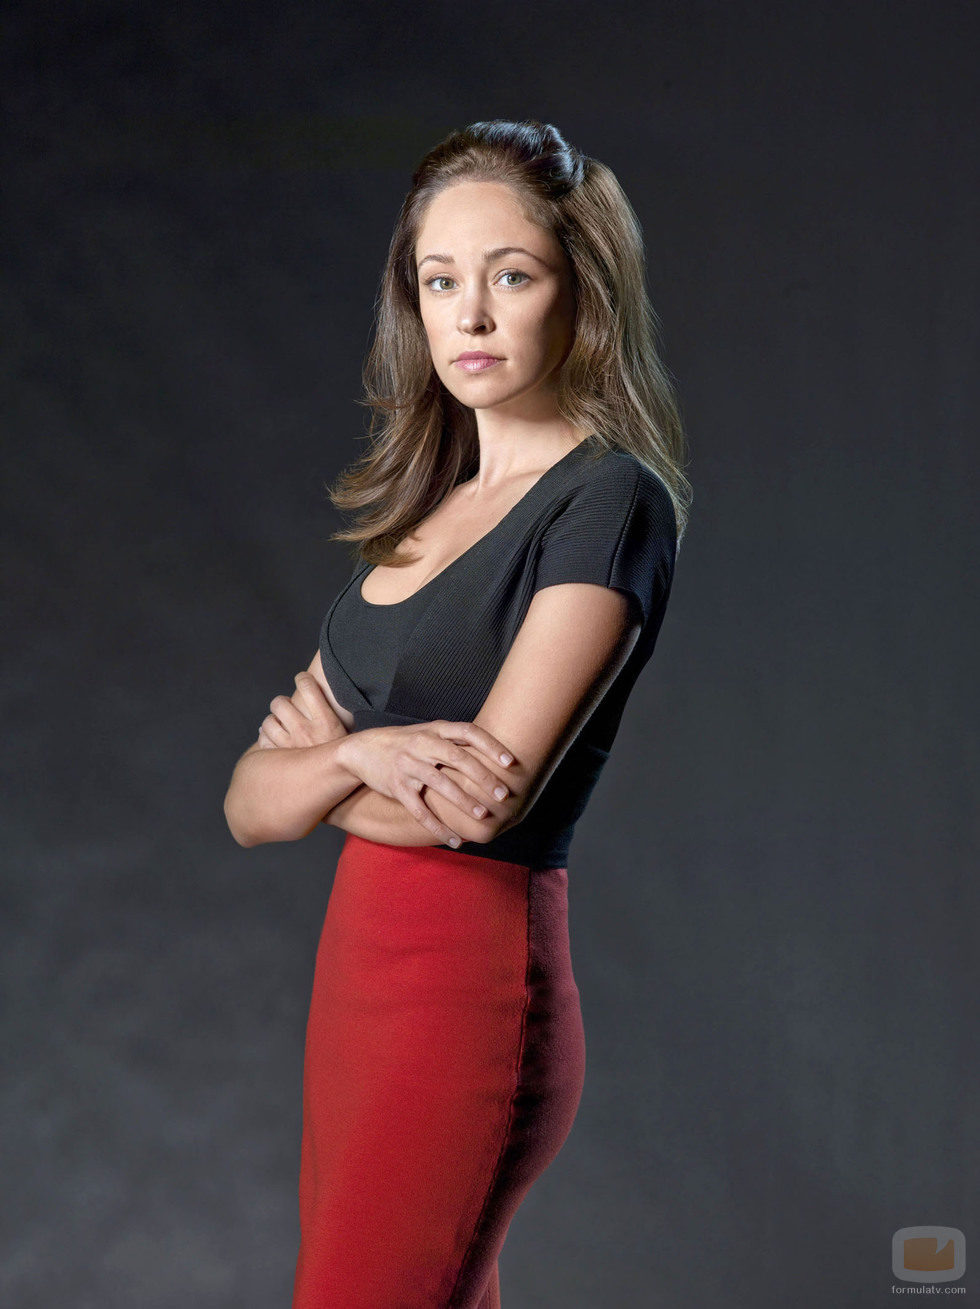 Autumn Reeser Es Kylie Sinclair En 'Last Resort': Fotos